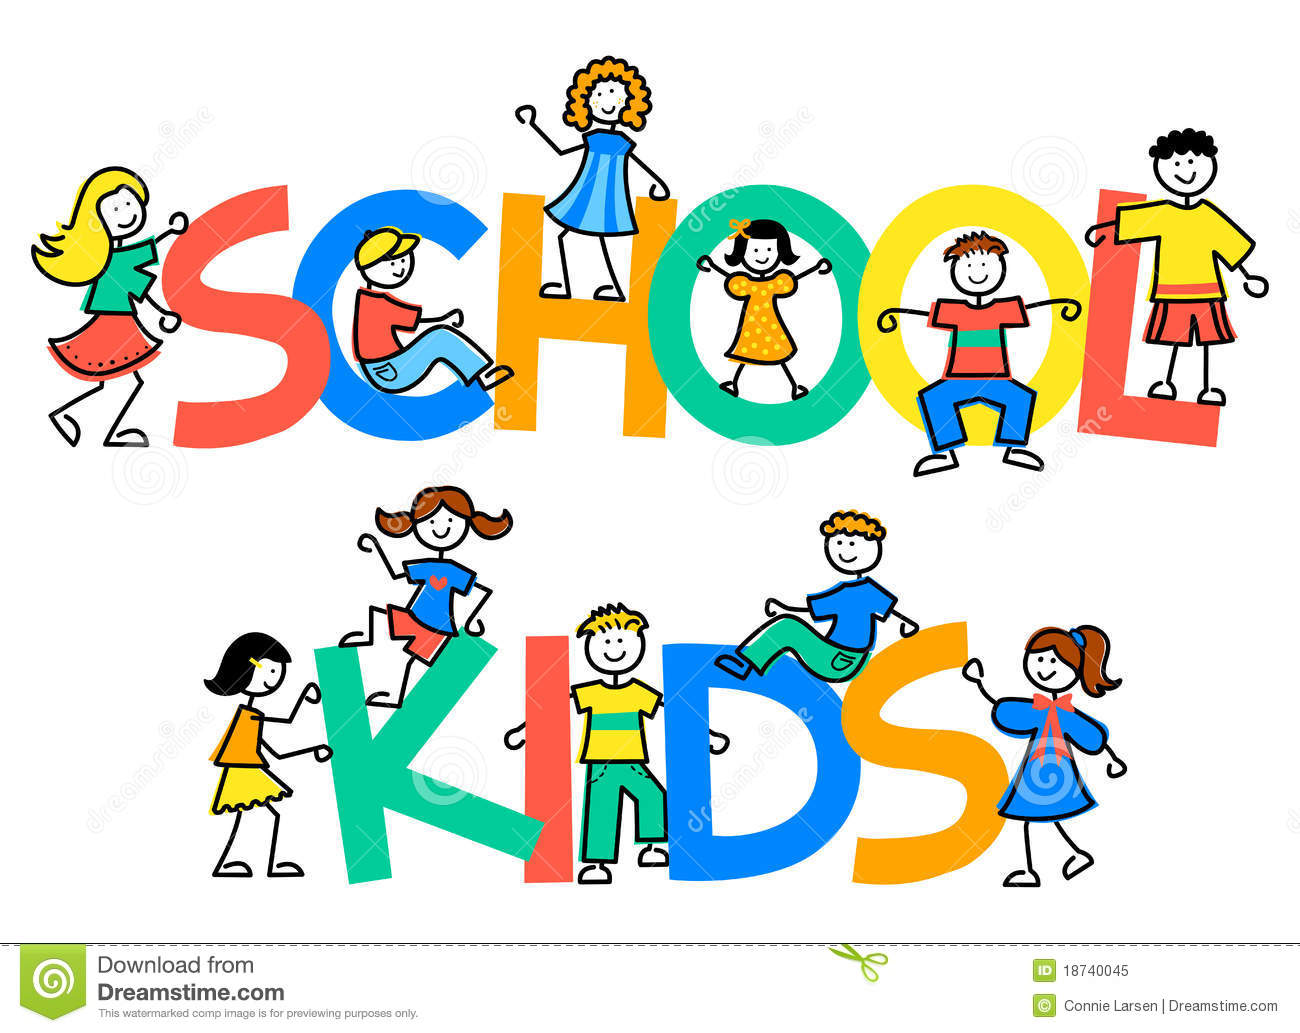 cartoon school kidseps - Cartoon Kids Pics